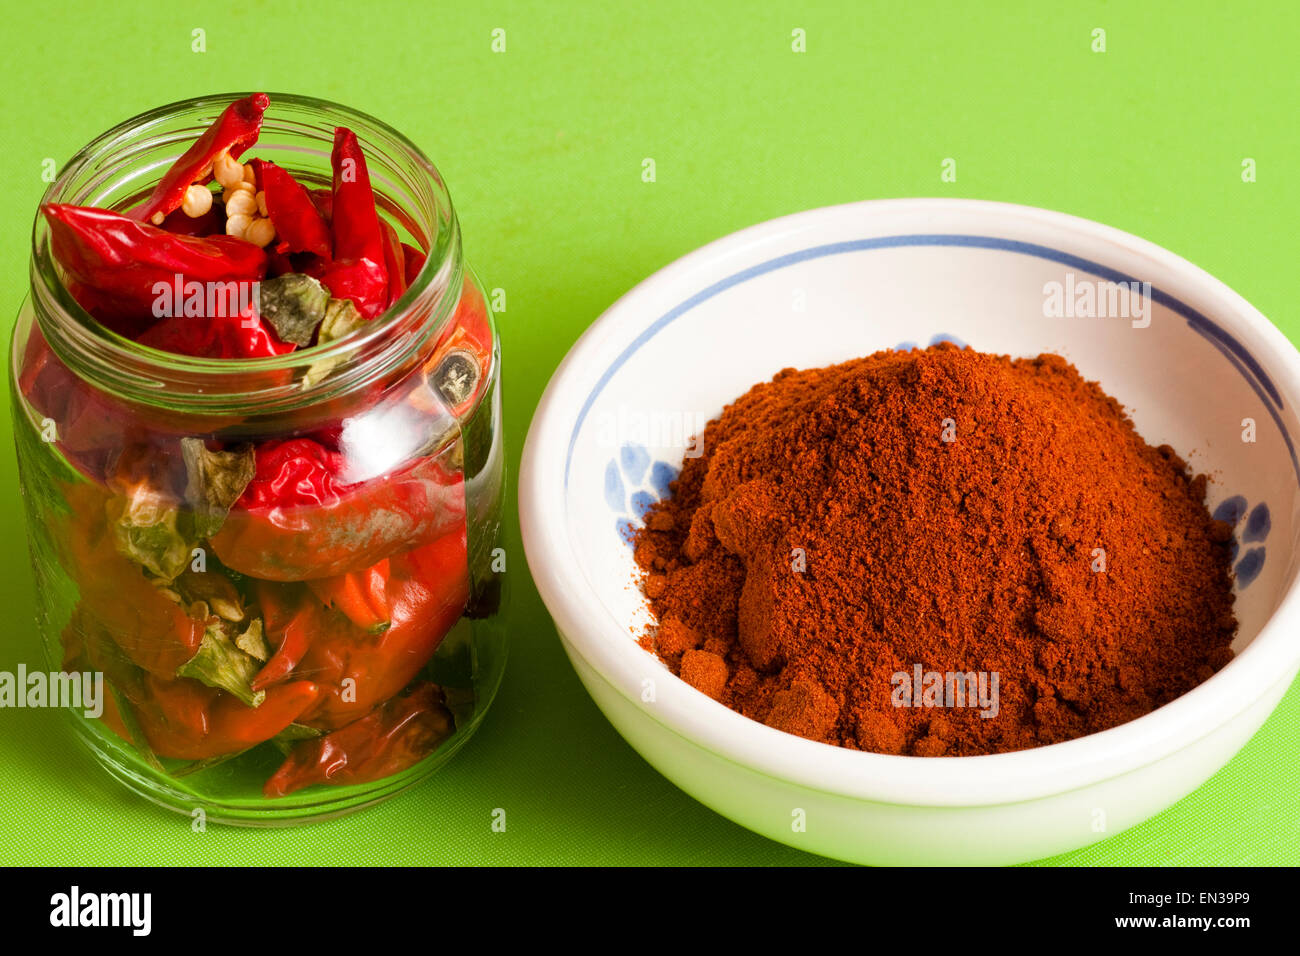 red hot chili peppers whole and ground - Stock Image